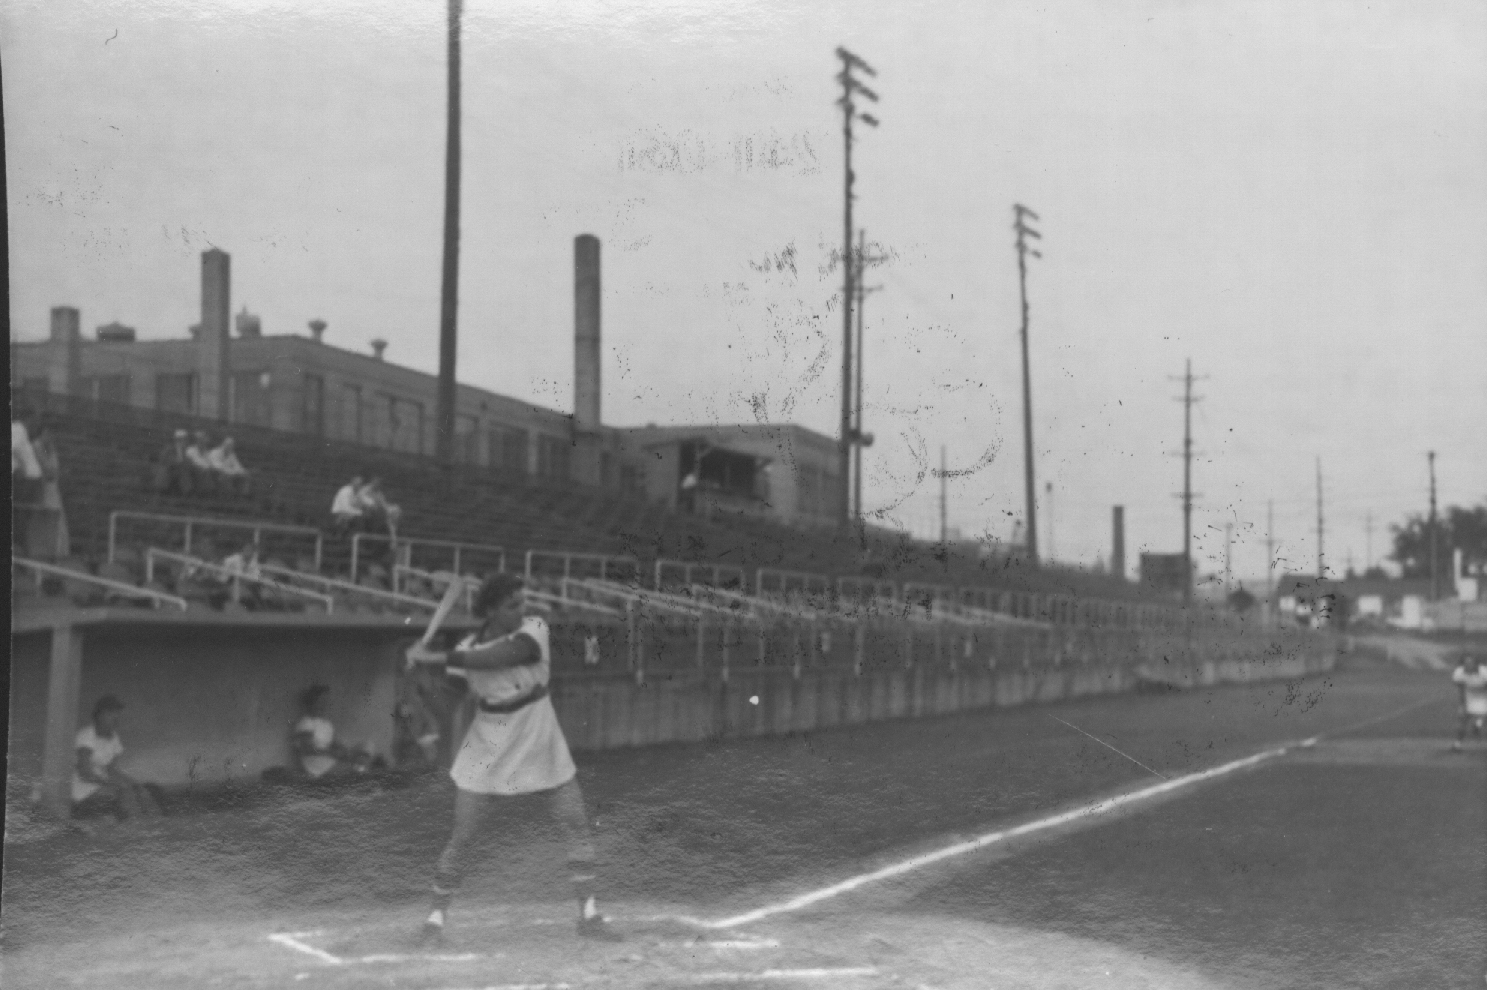 Batting at Smith Field (Courtesy of The History Museum, South Bend)